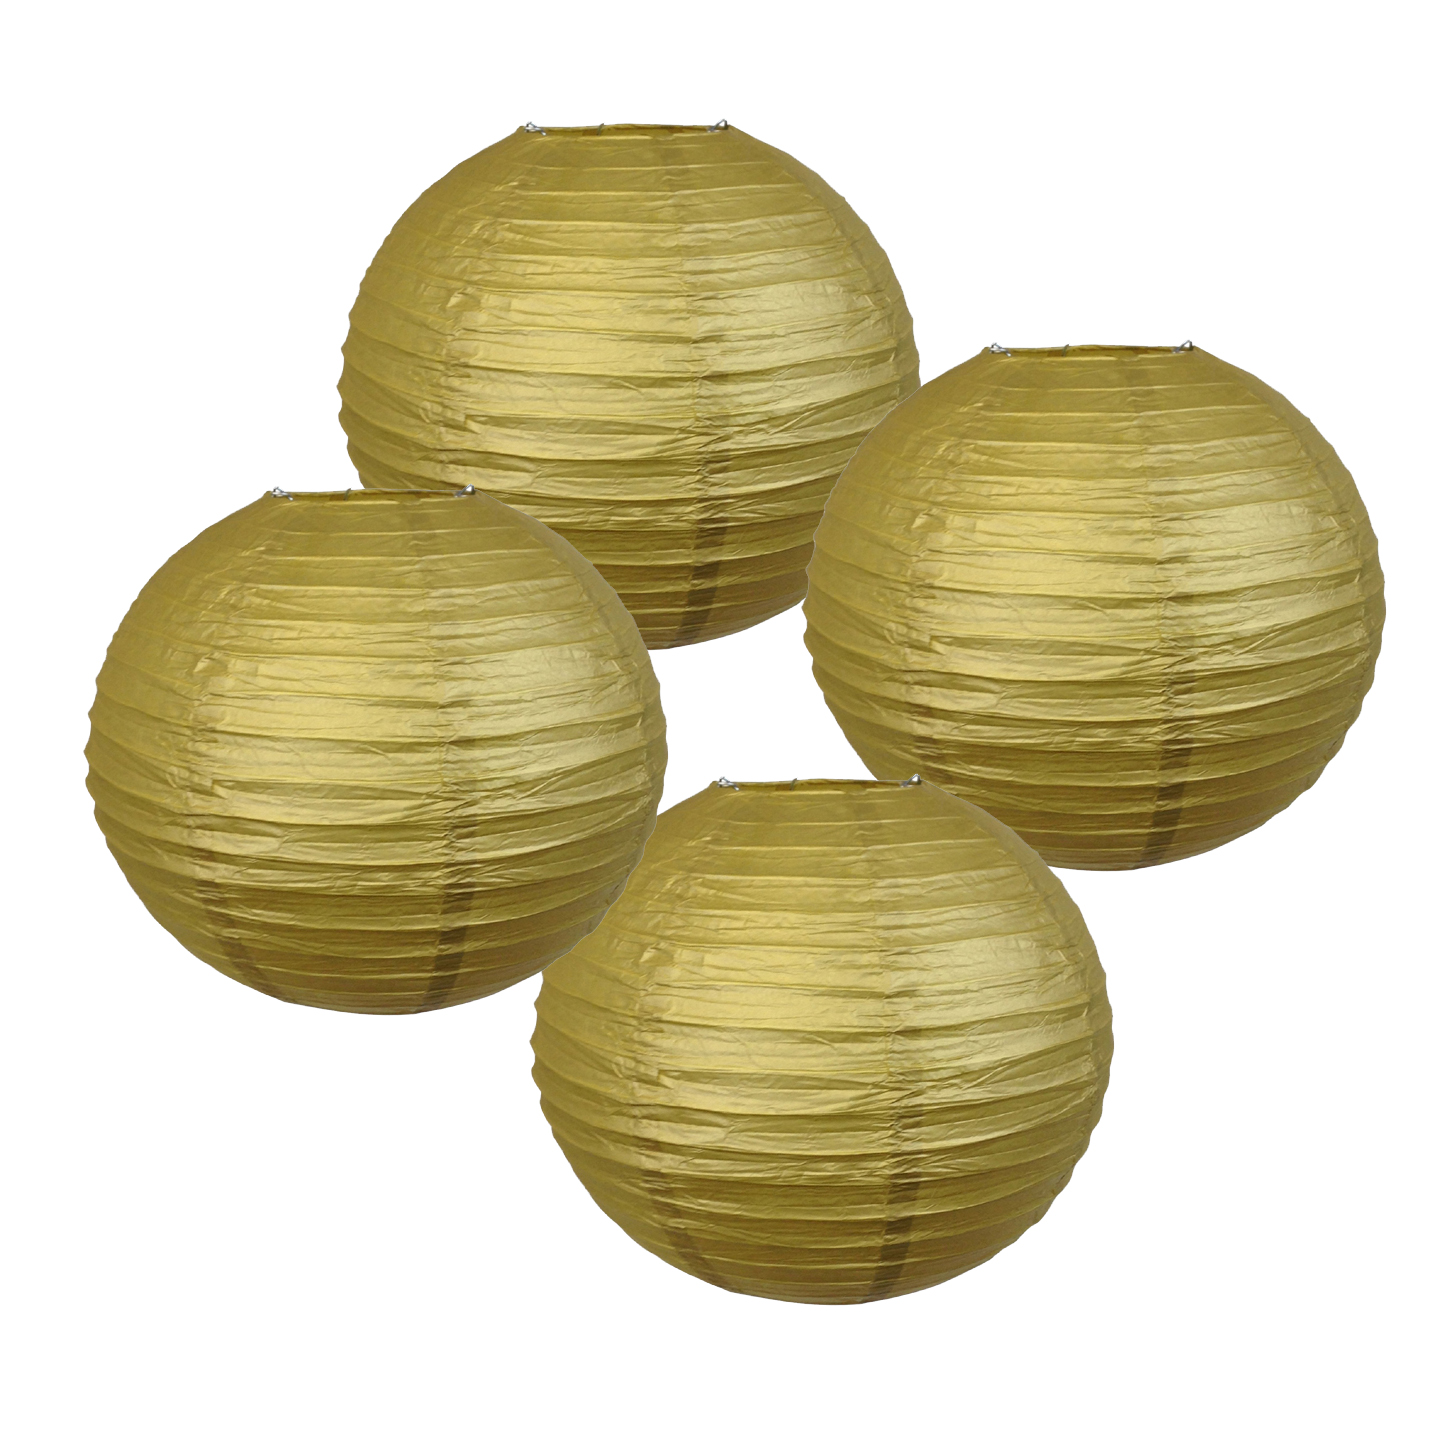 "Just Artifacts 12"" Pineapple Yellow Paper Lanterns (Set of 4) - Decorative Round Paper Lanterns for Birthday Parties, Weddings, Baby Showers, and Life Celebrations!"